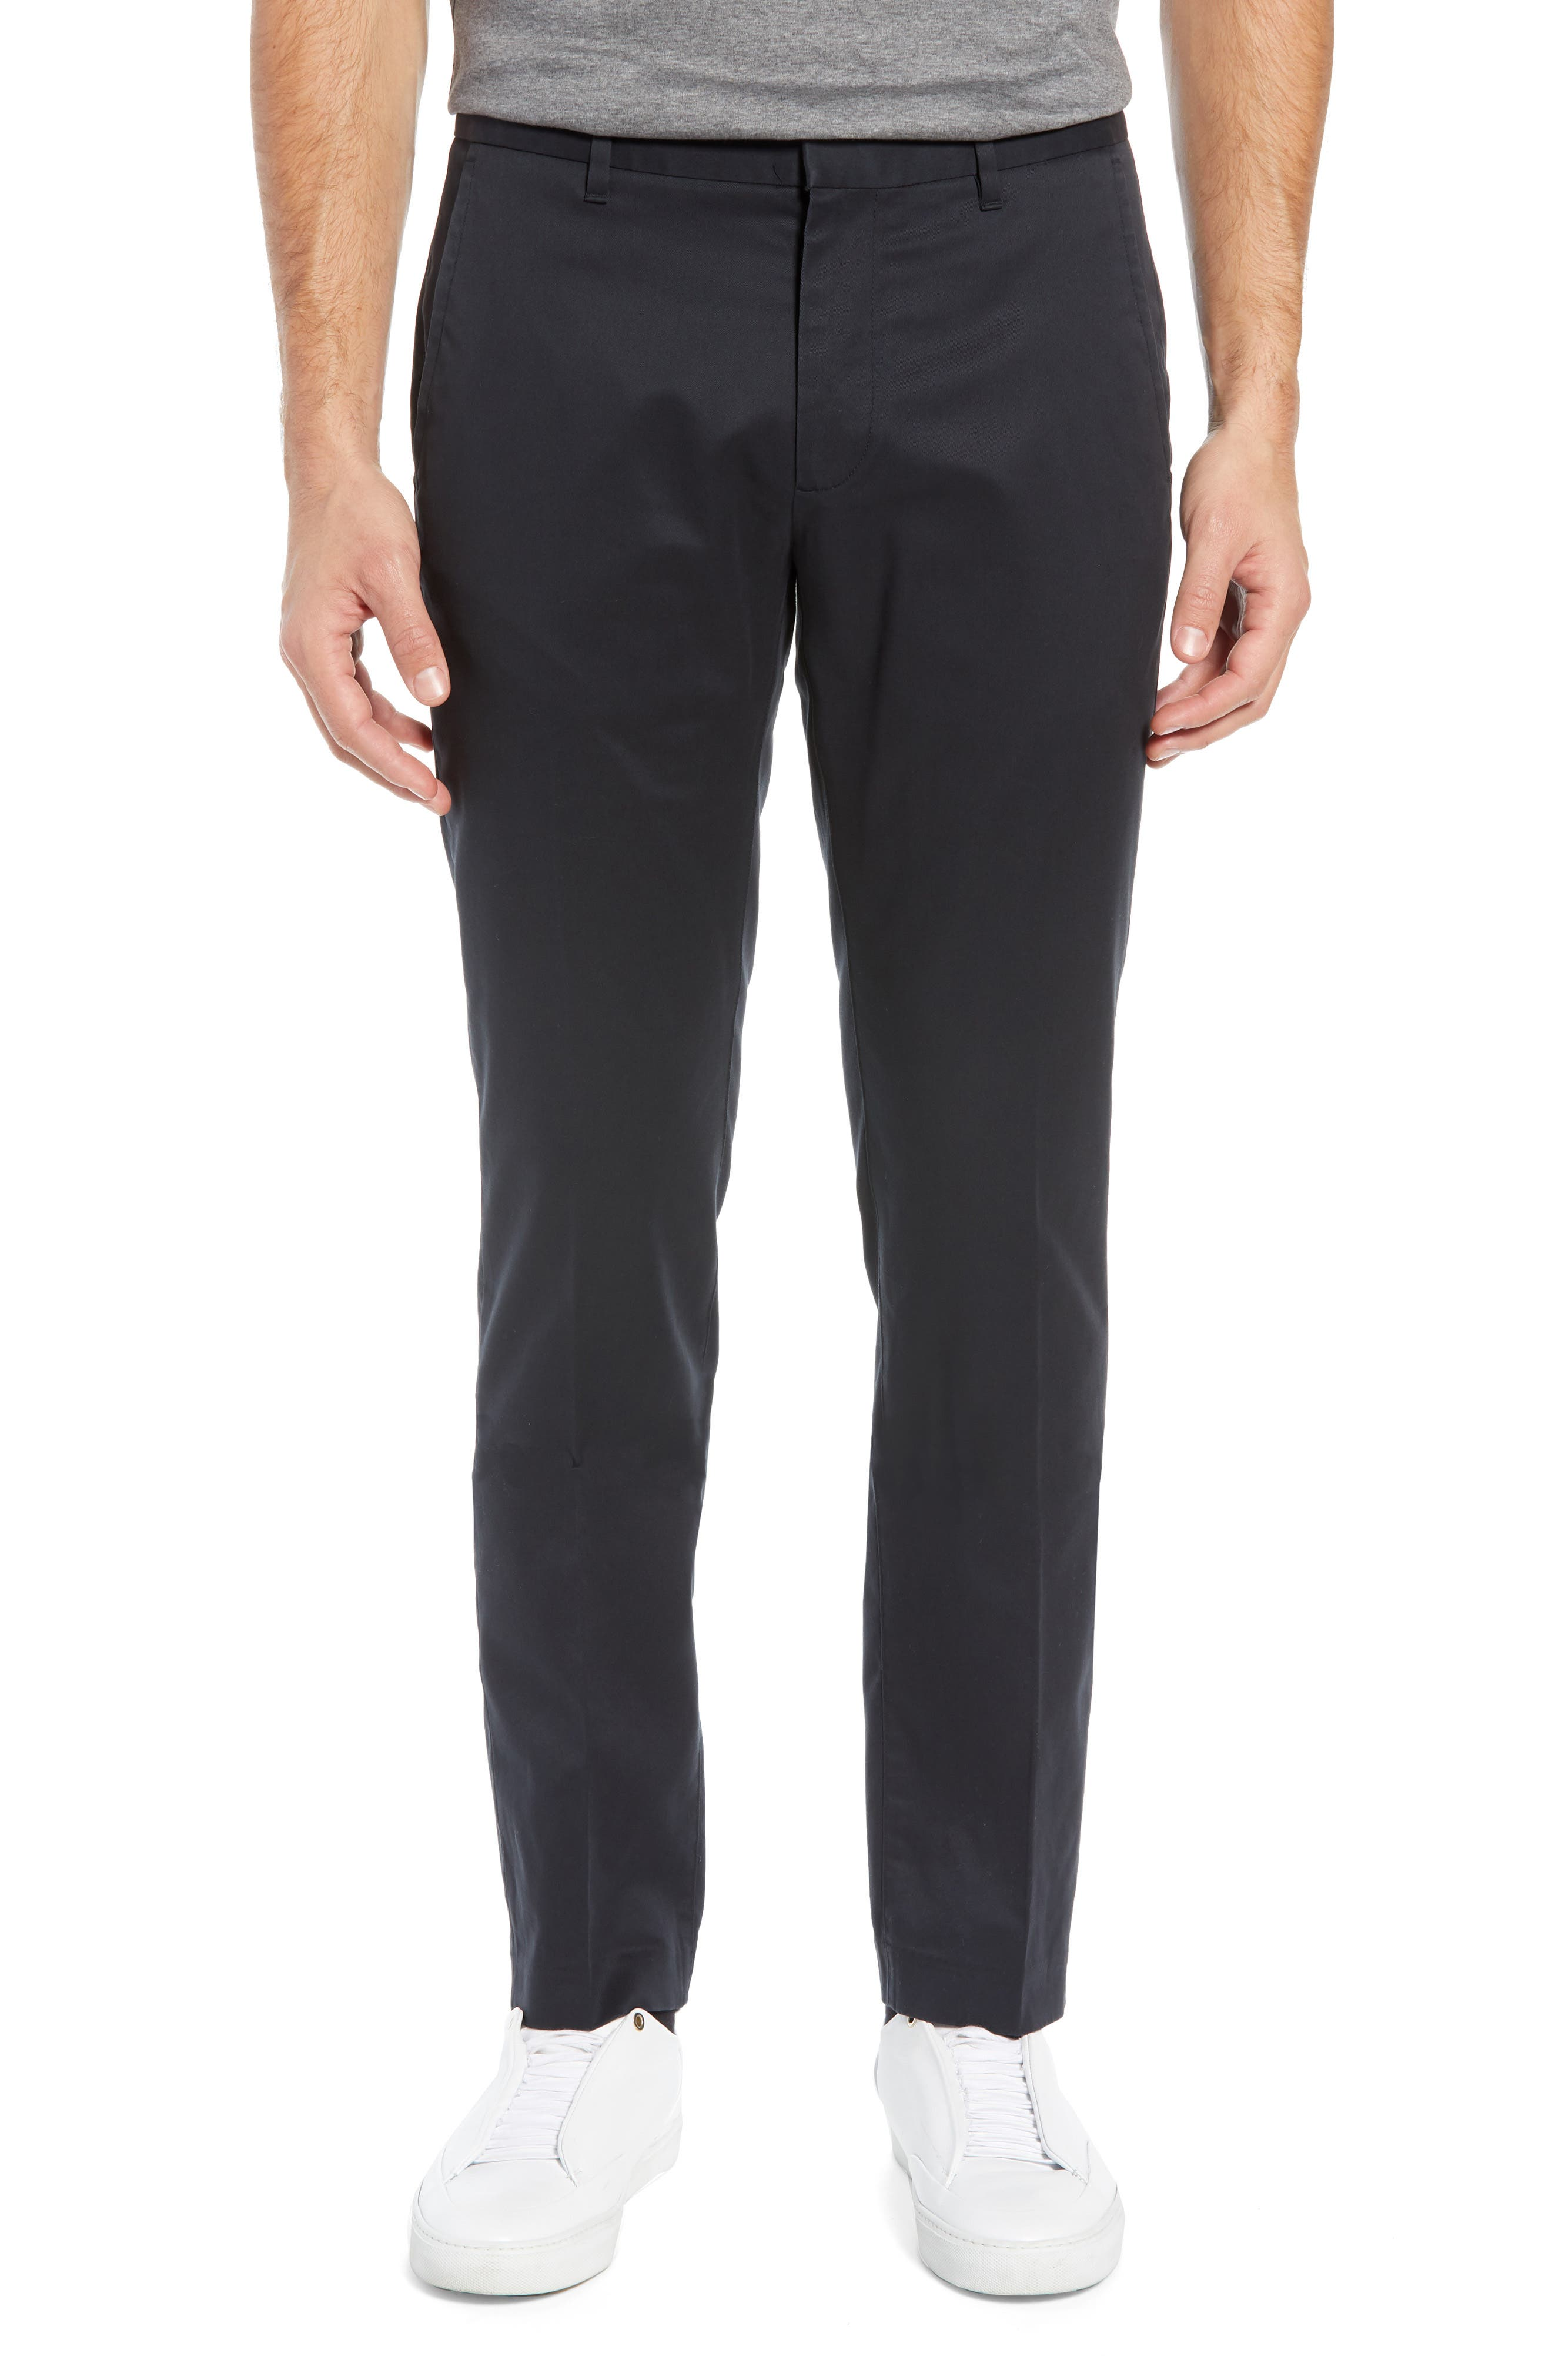 BONOBOS, Weekday Warrior Tailored Fit Stretch Dress Pants, Main thumbnail 1, color, BLACK